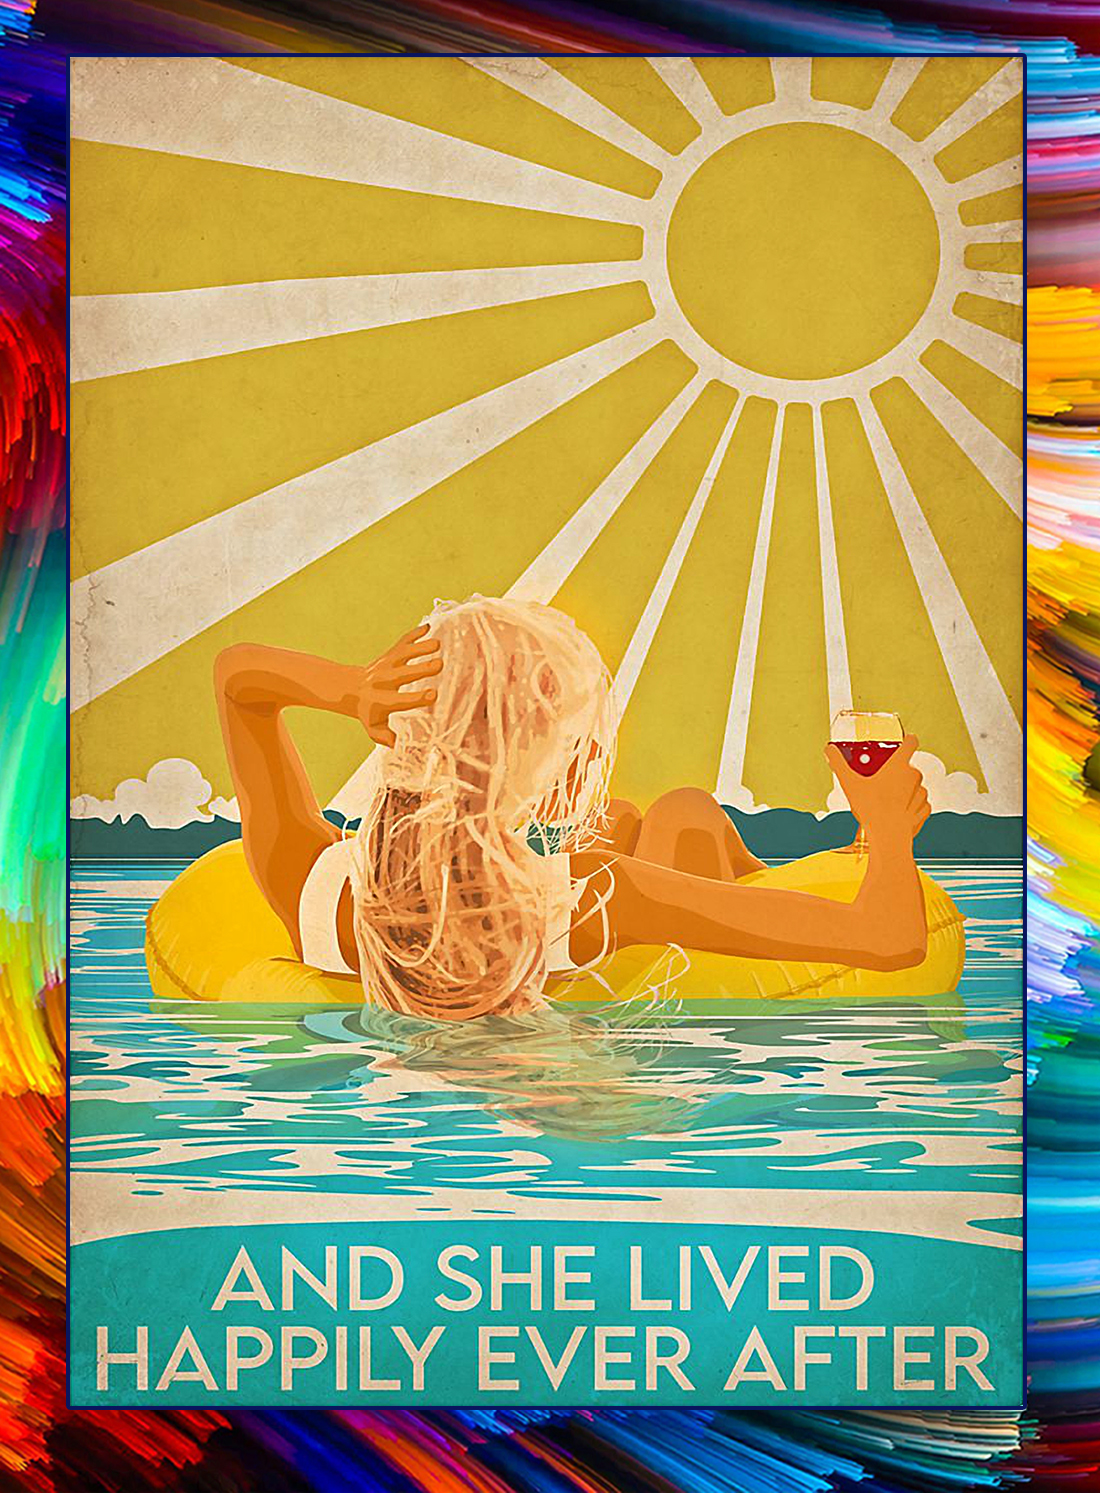 Swimming blonde girl and she lived happily after poster - A4